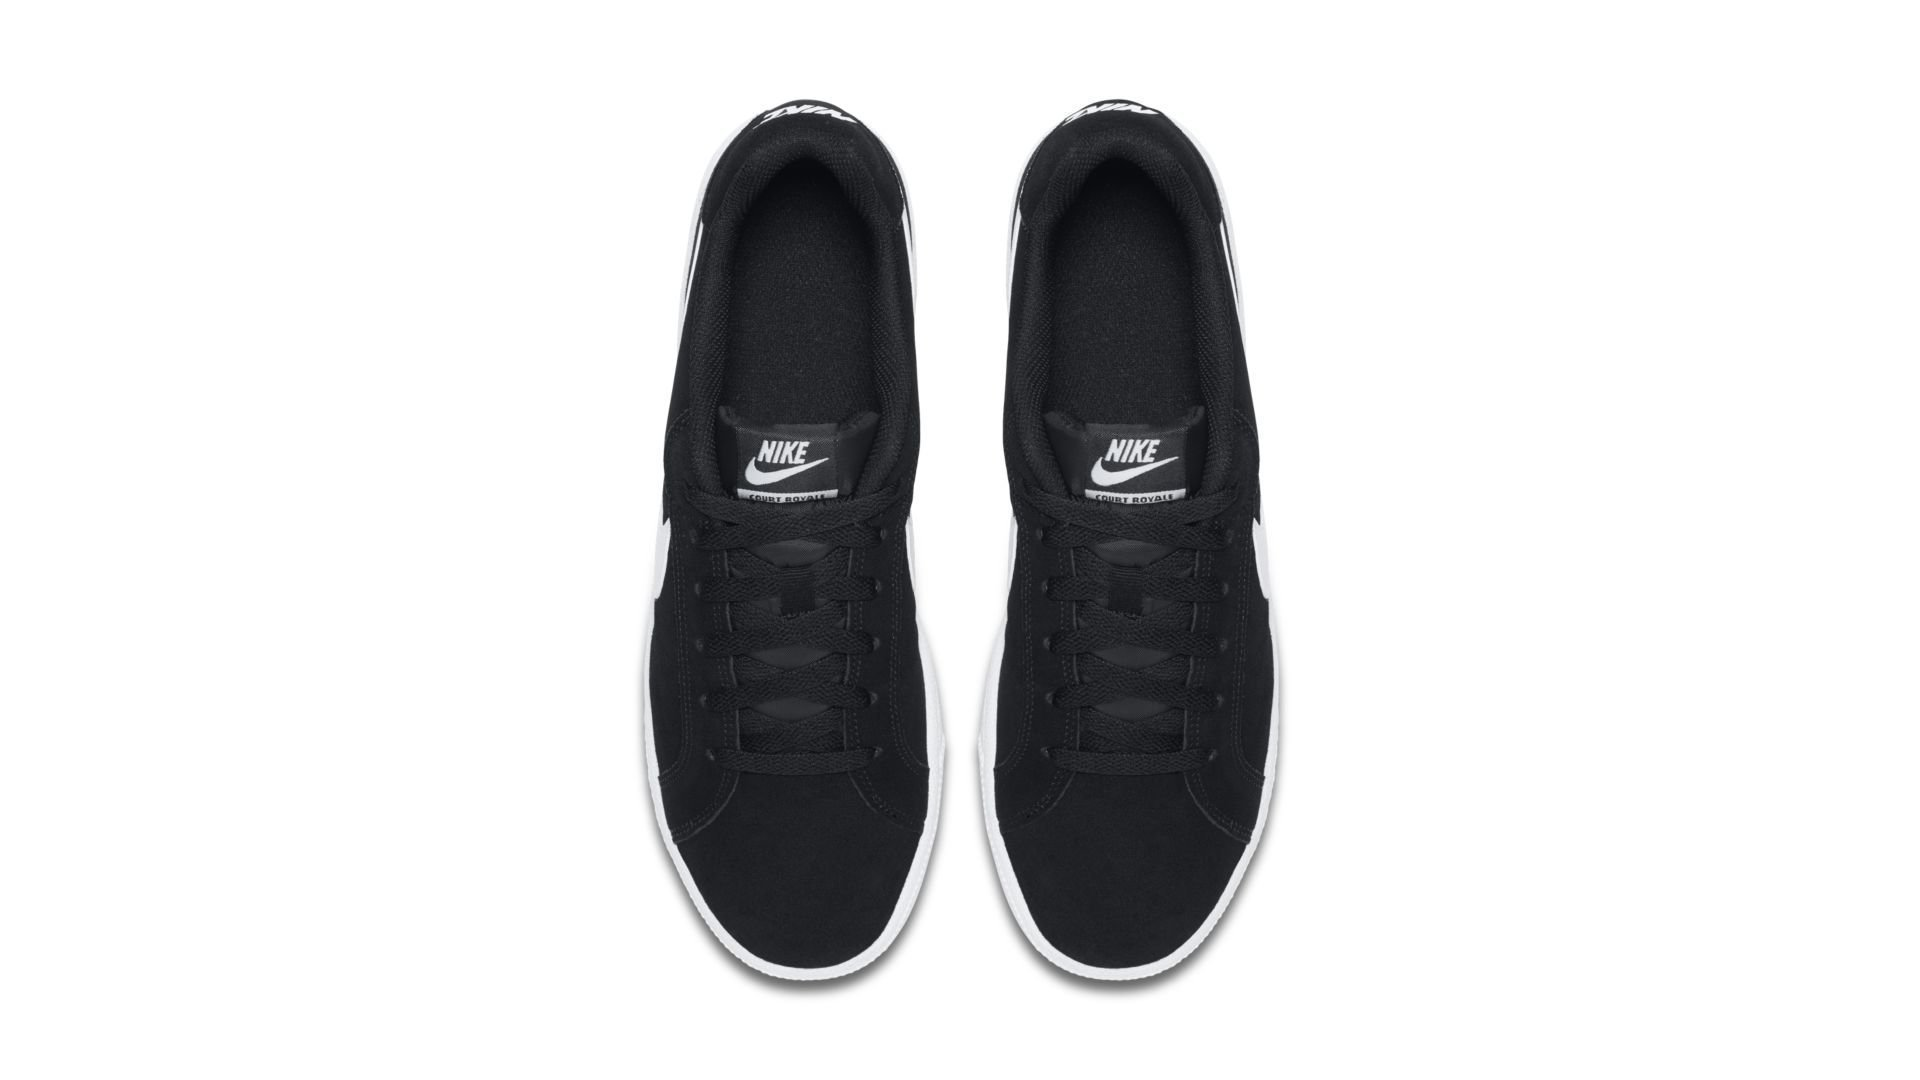 Nike Court Royale Suede Black White (819802-011)